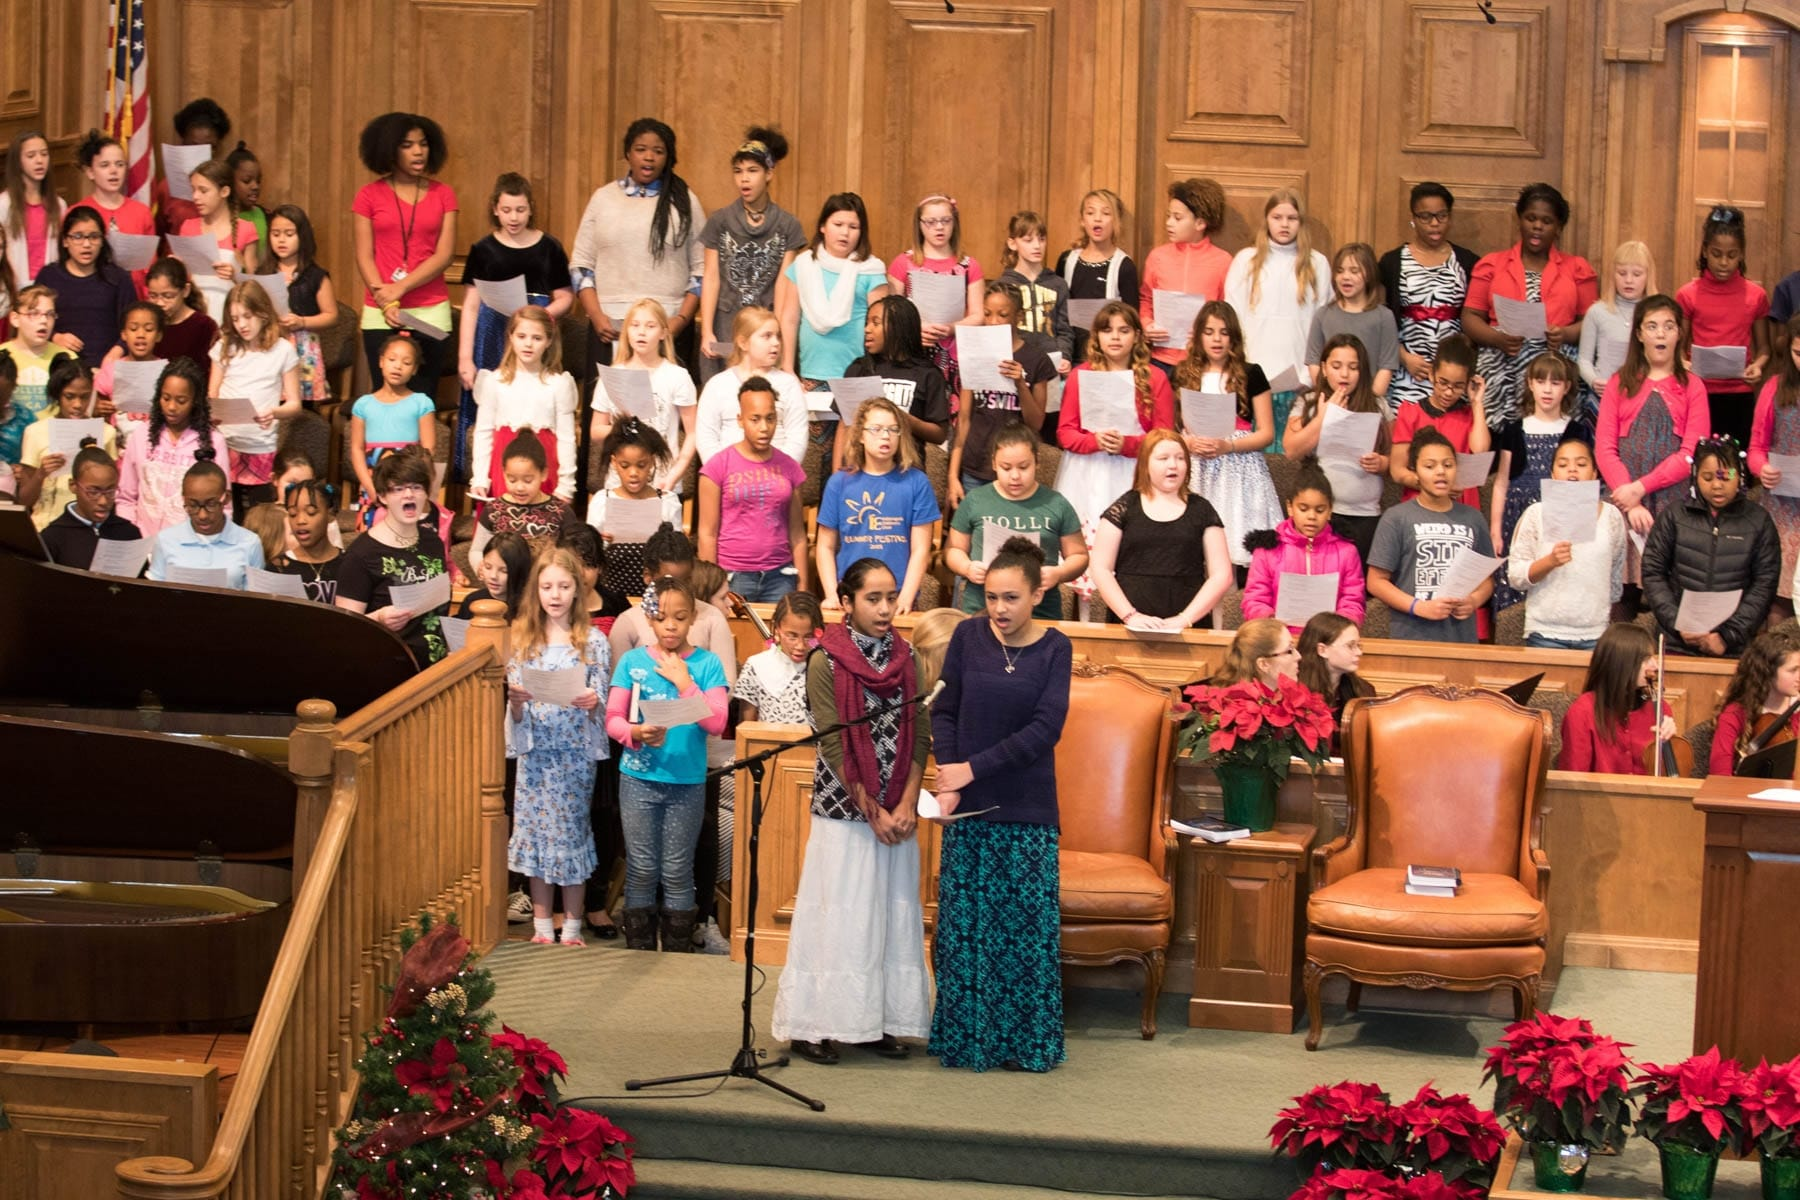 Fairhaven Baptist Church Children's Program 2015 (2 of 7)